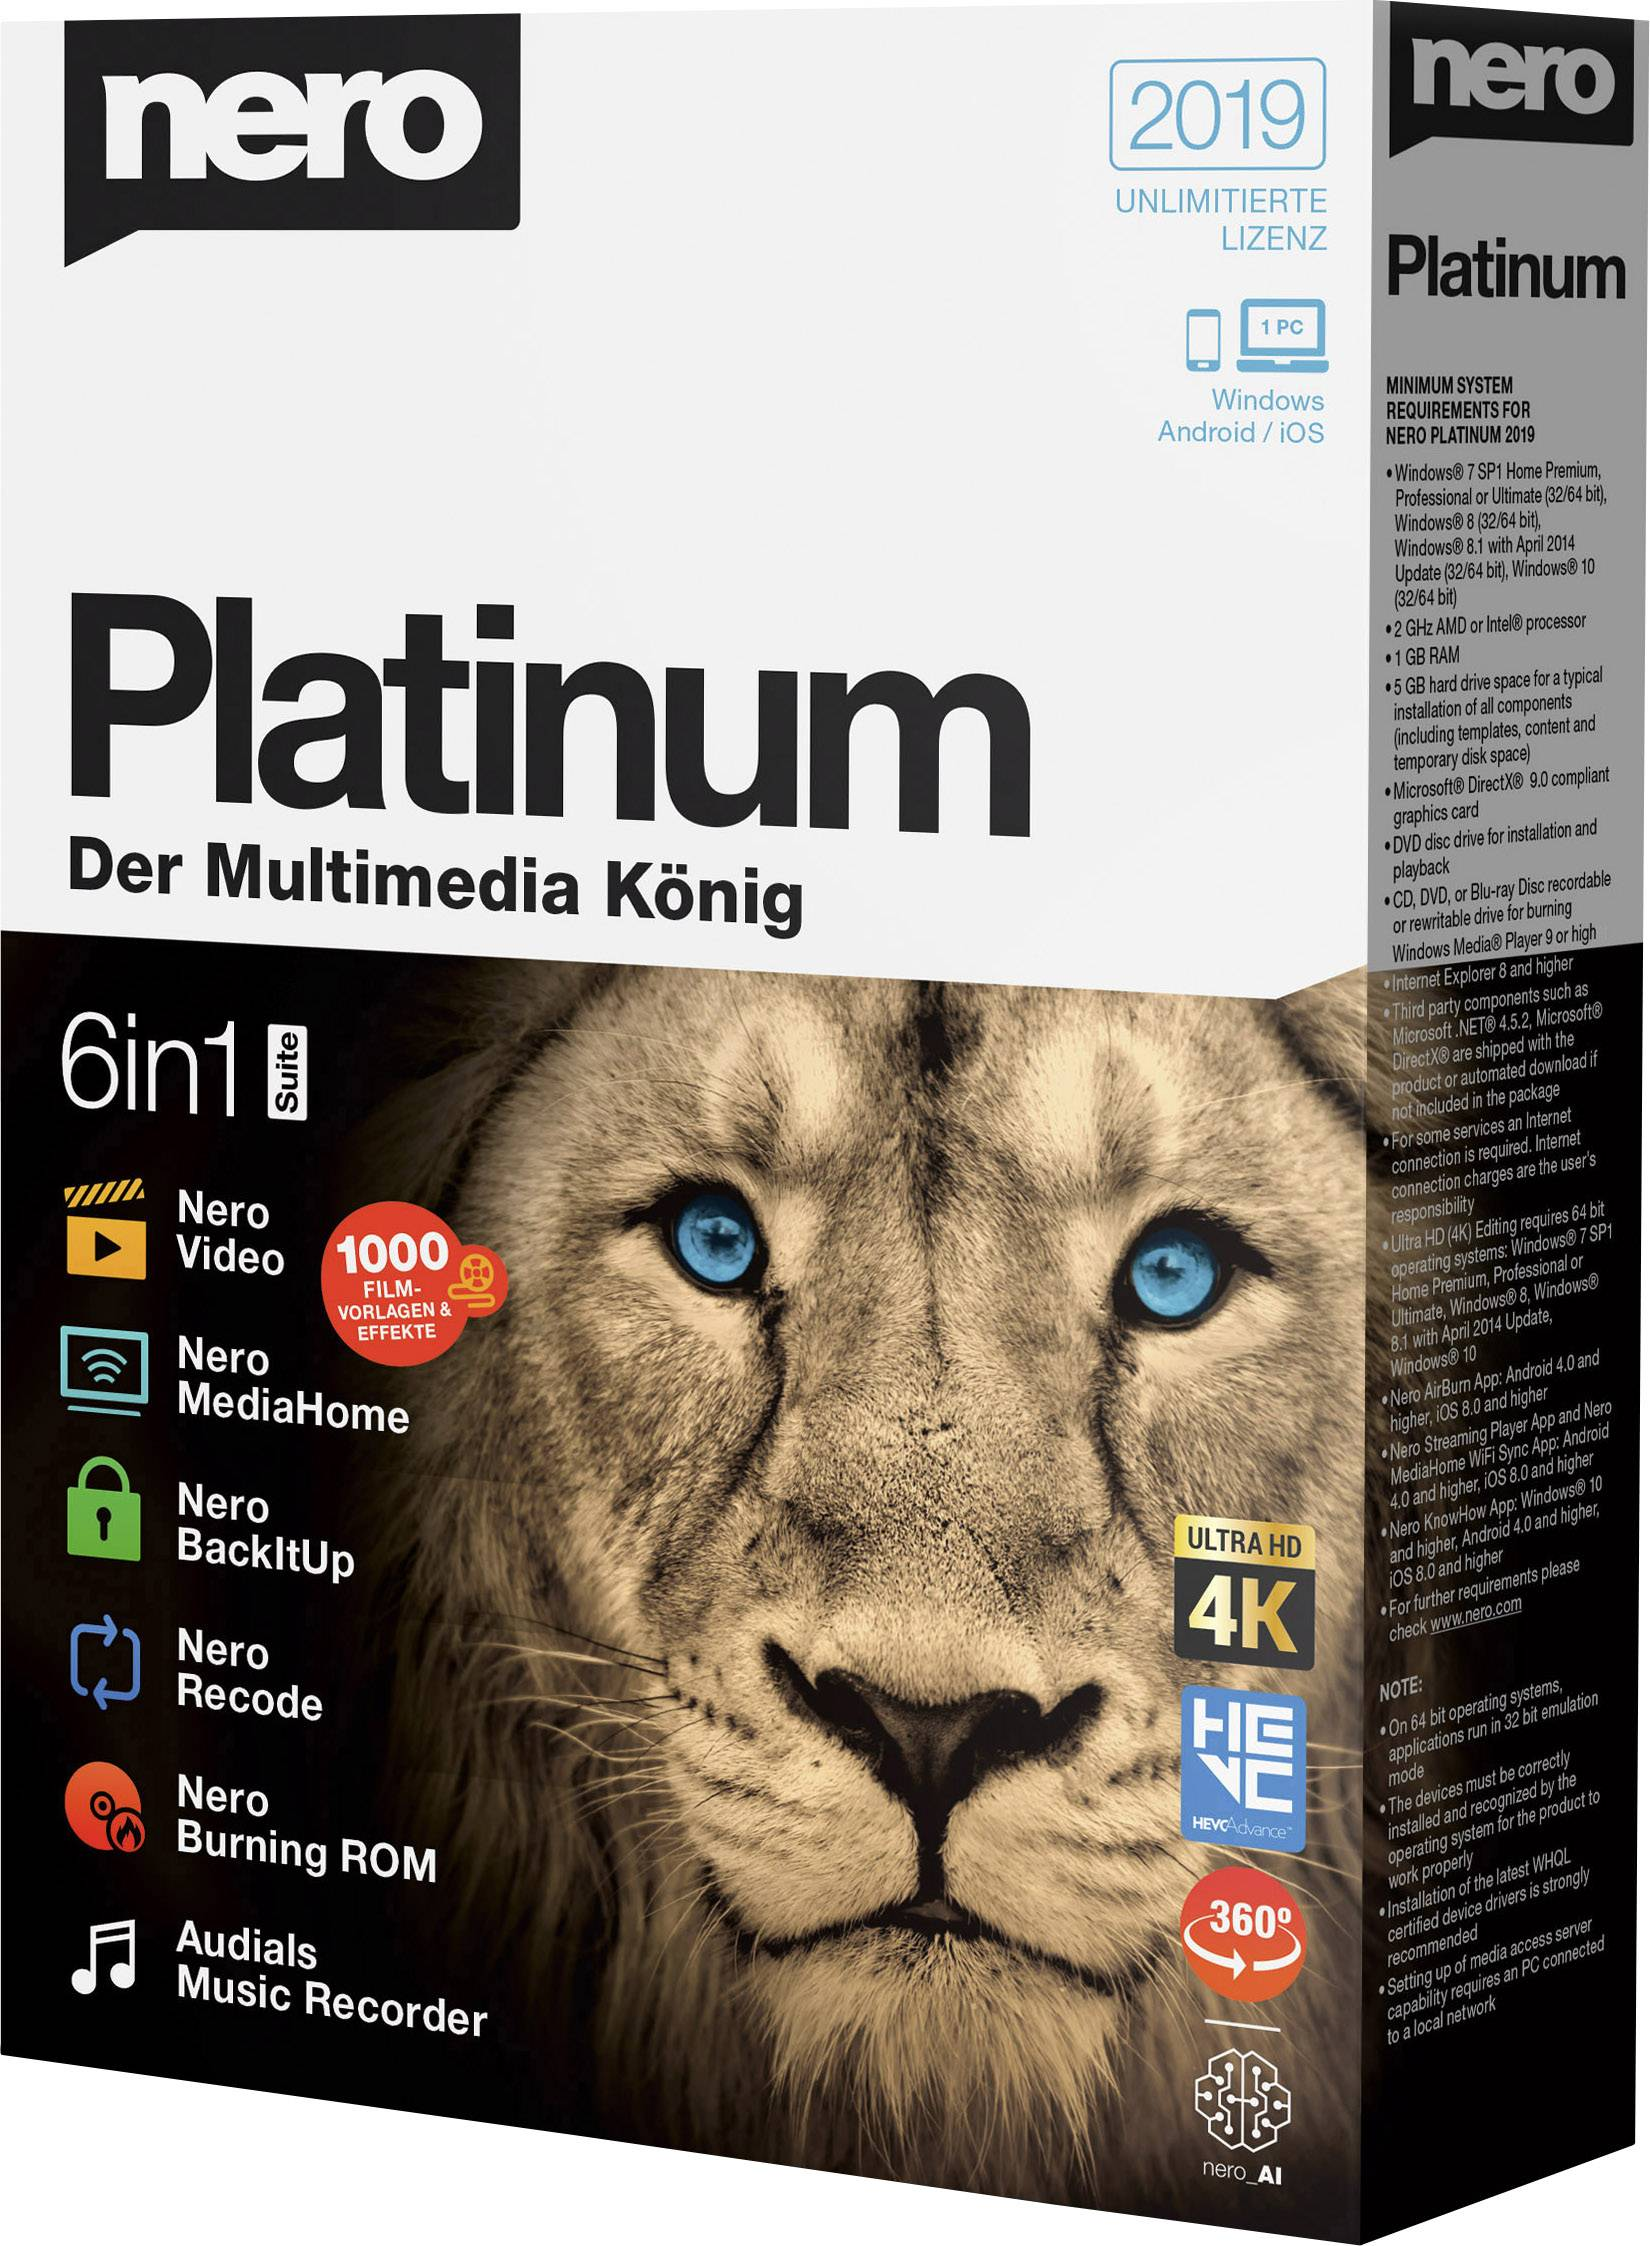 nero platinum suite is a 1-year licence